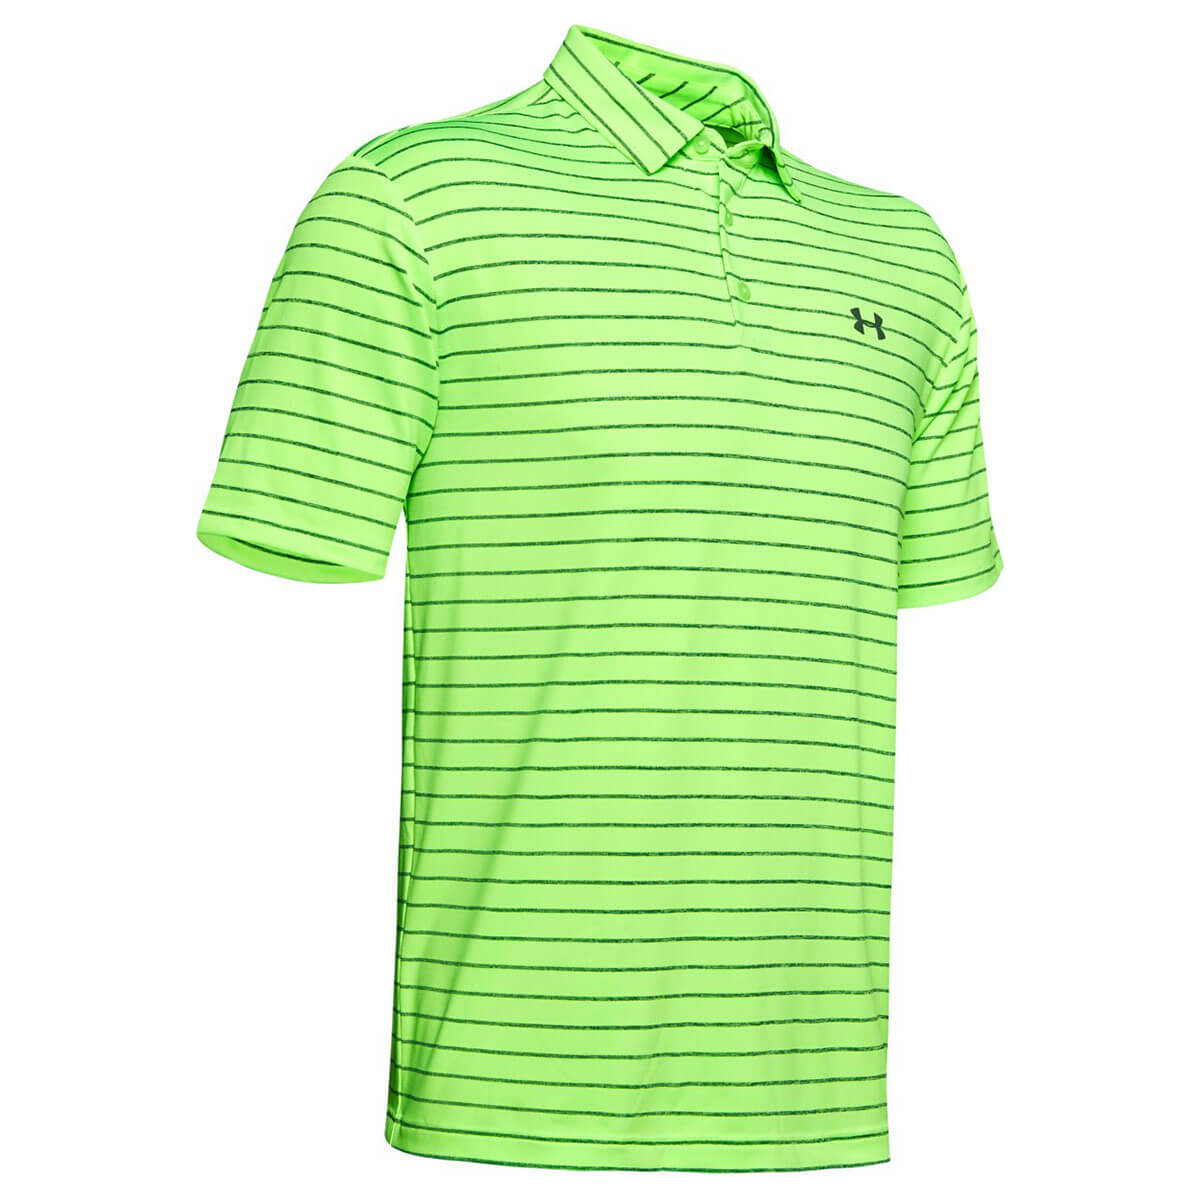 Under-Armour-Mens-2019-Playoff-Polo-2-0-Breathable-Light-Stretch-Polo-Shirt thumbnail 74